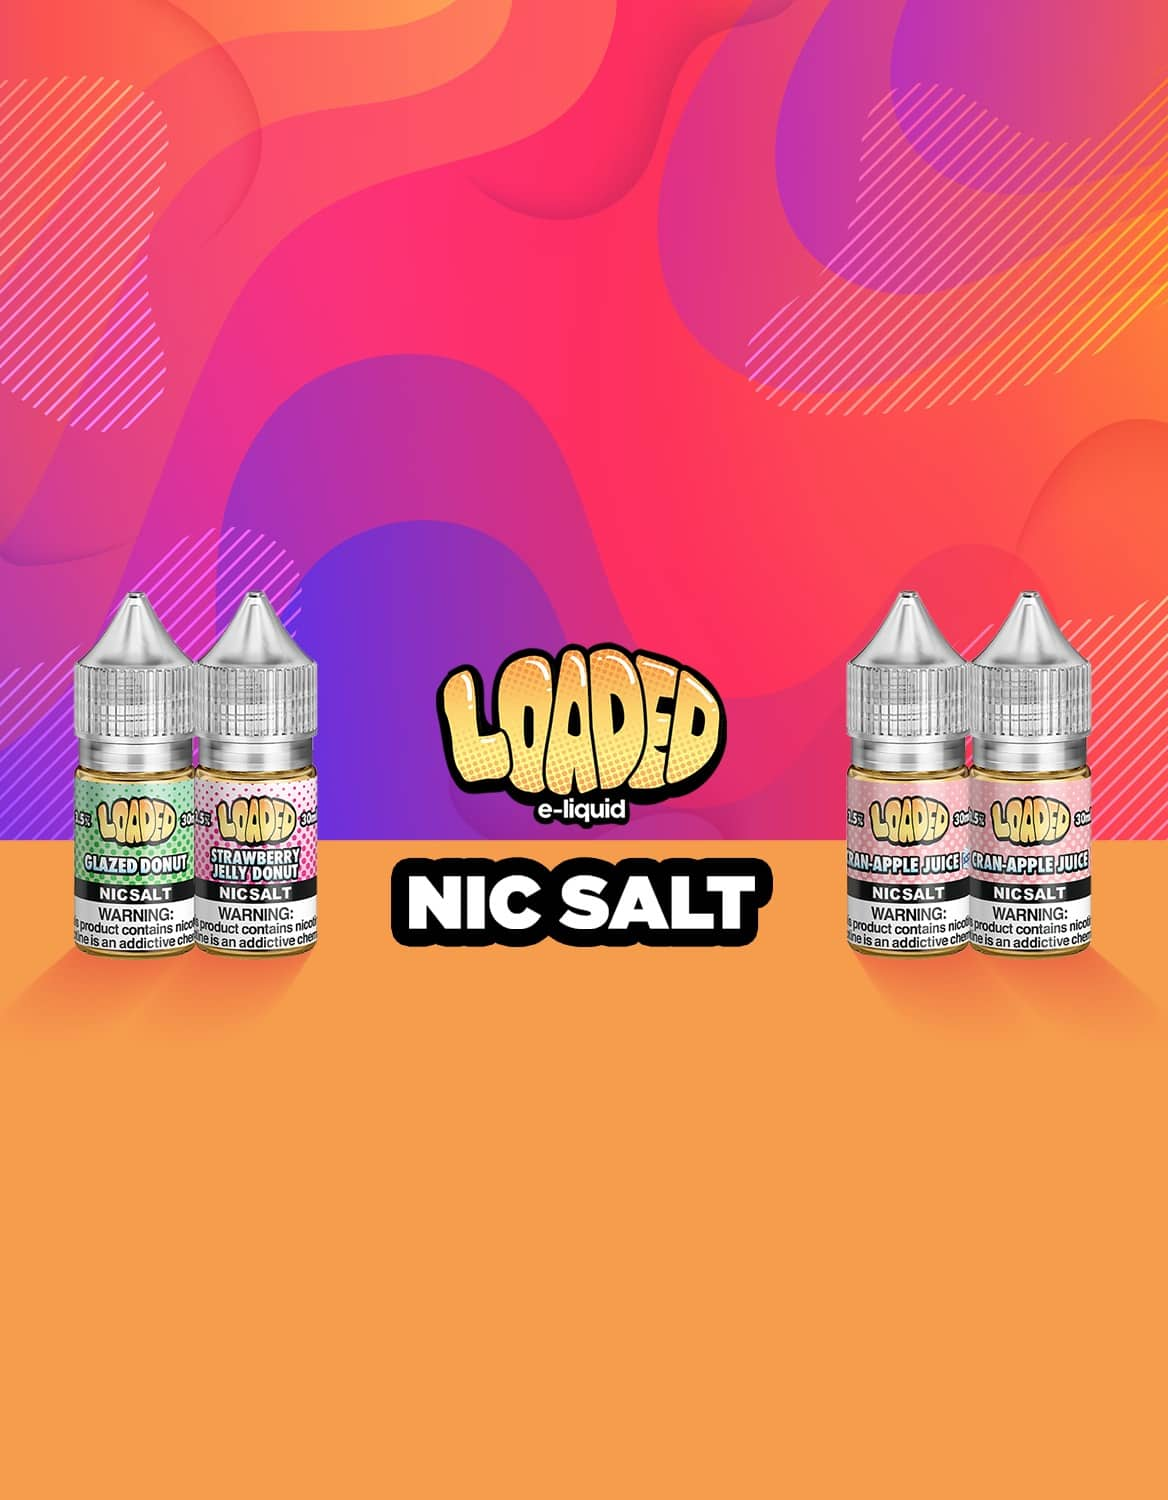 Loaded E-Juice | Your Favorite Snacks Made To Vape Juice